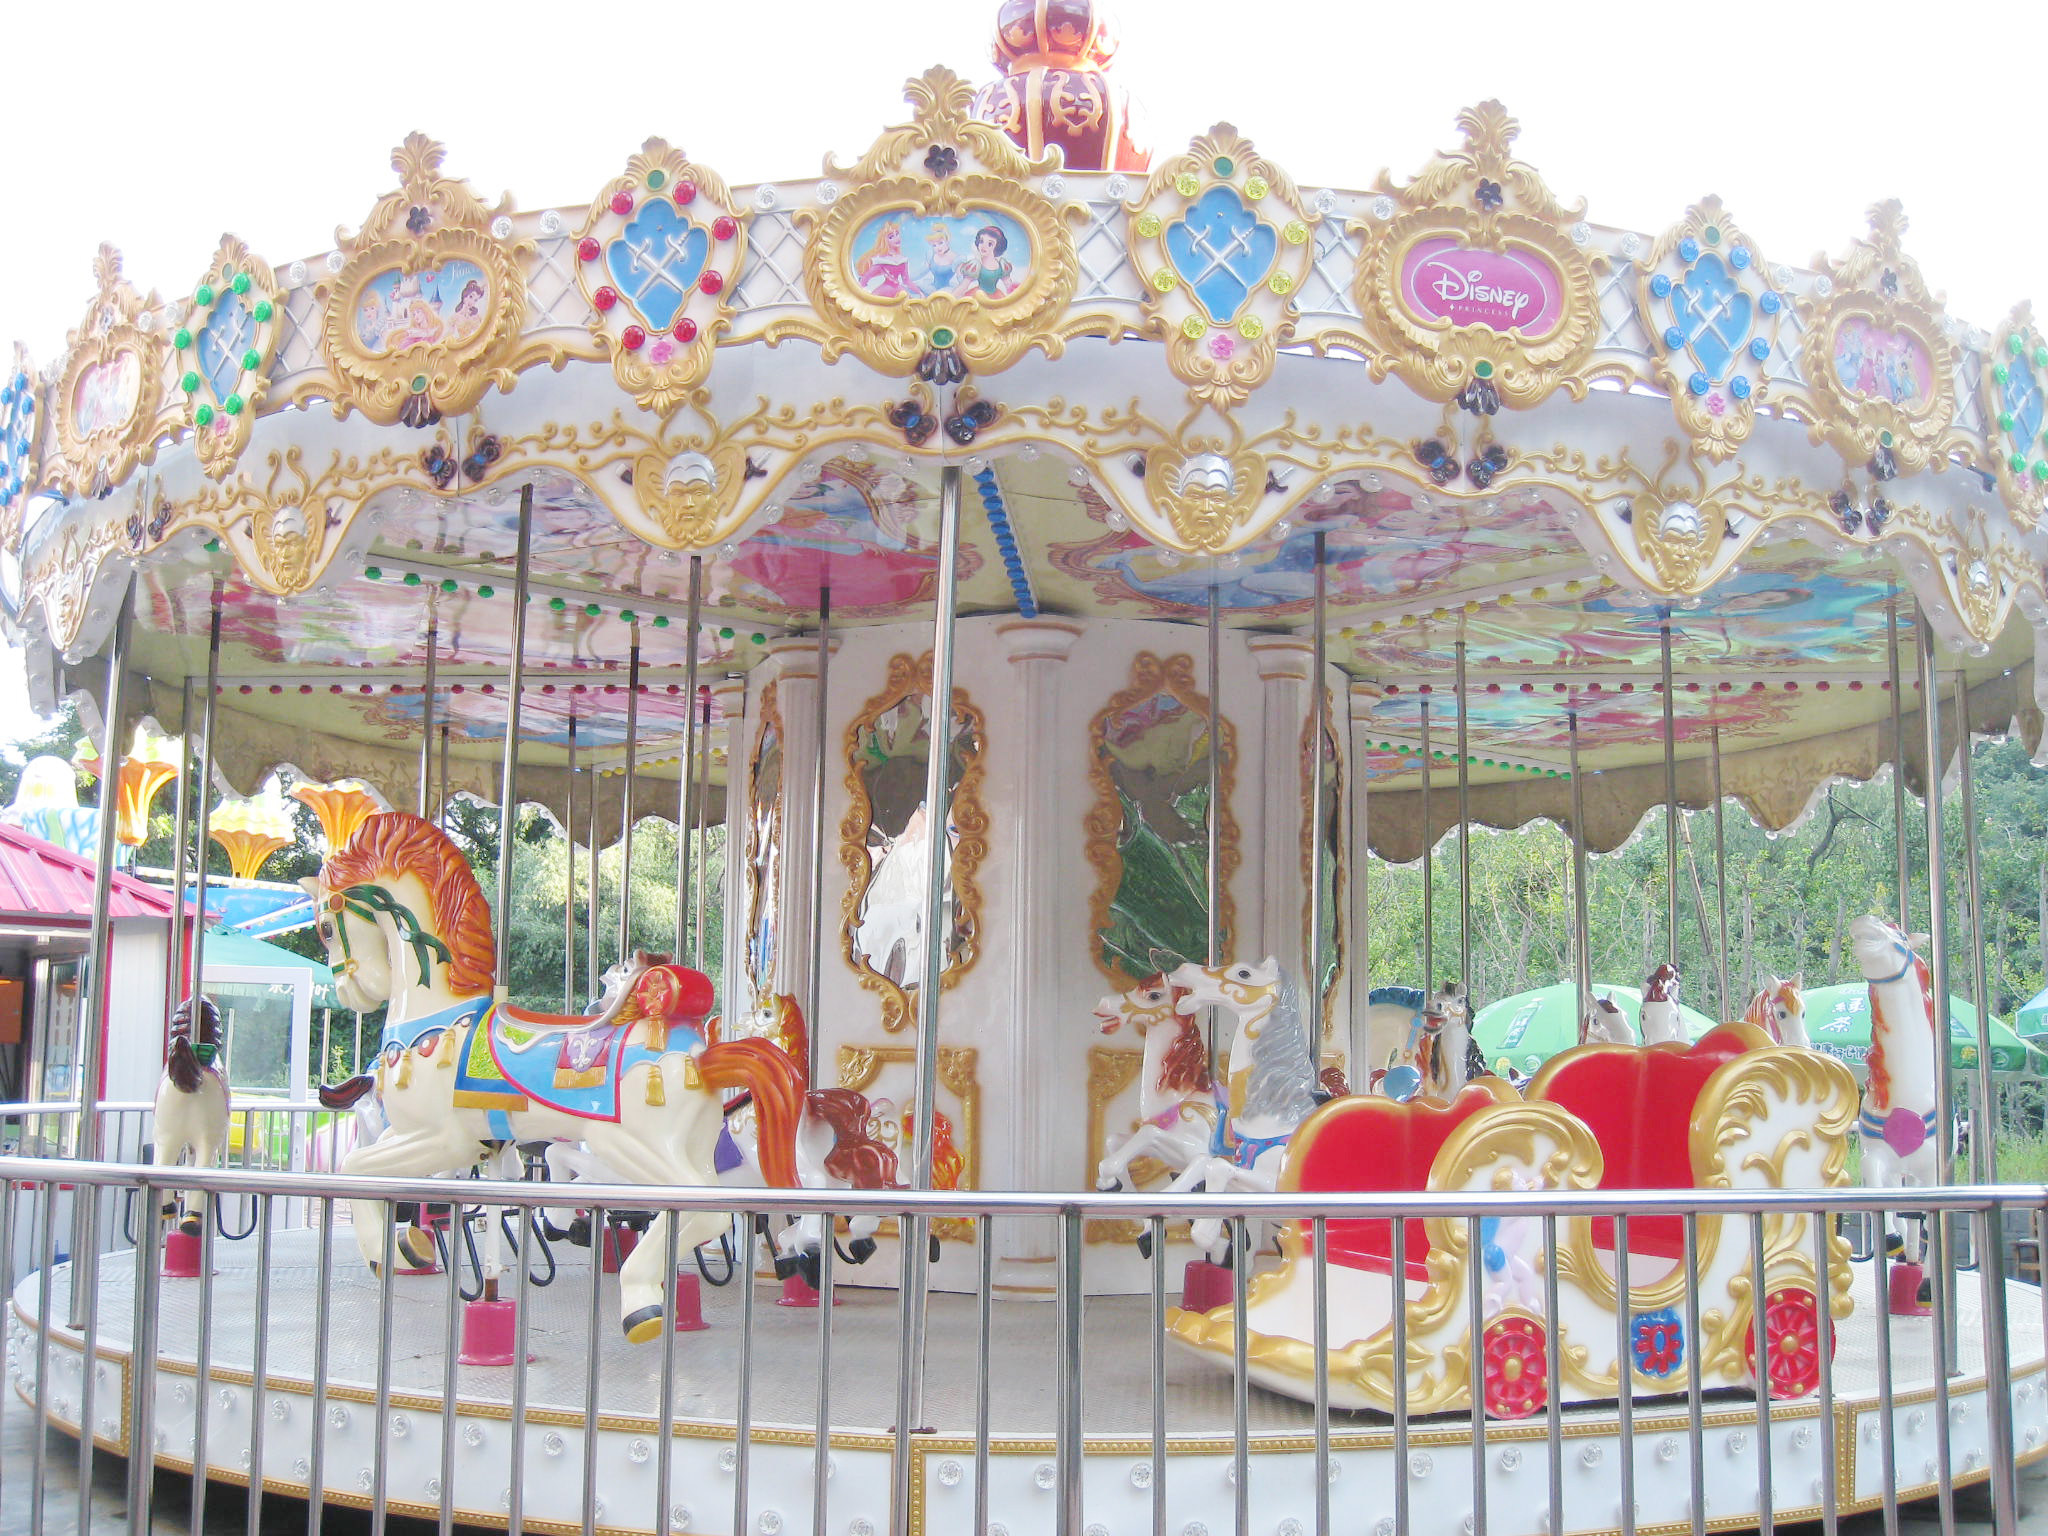 Carousel,Park Carousel,Portable Carousel,Carousel  for Sale,Carousel manufacturer,merry go round